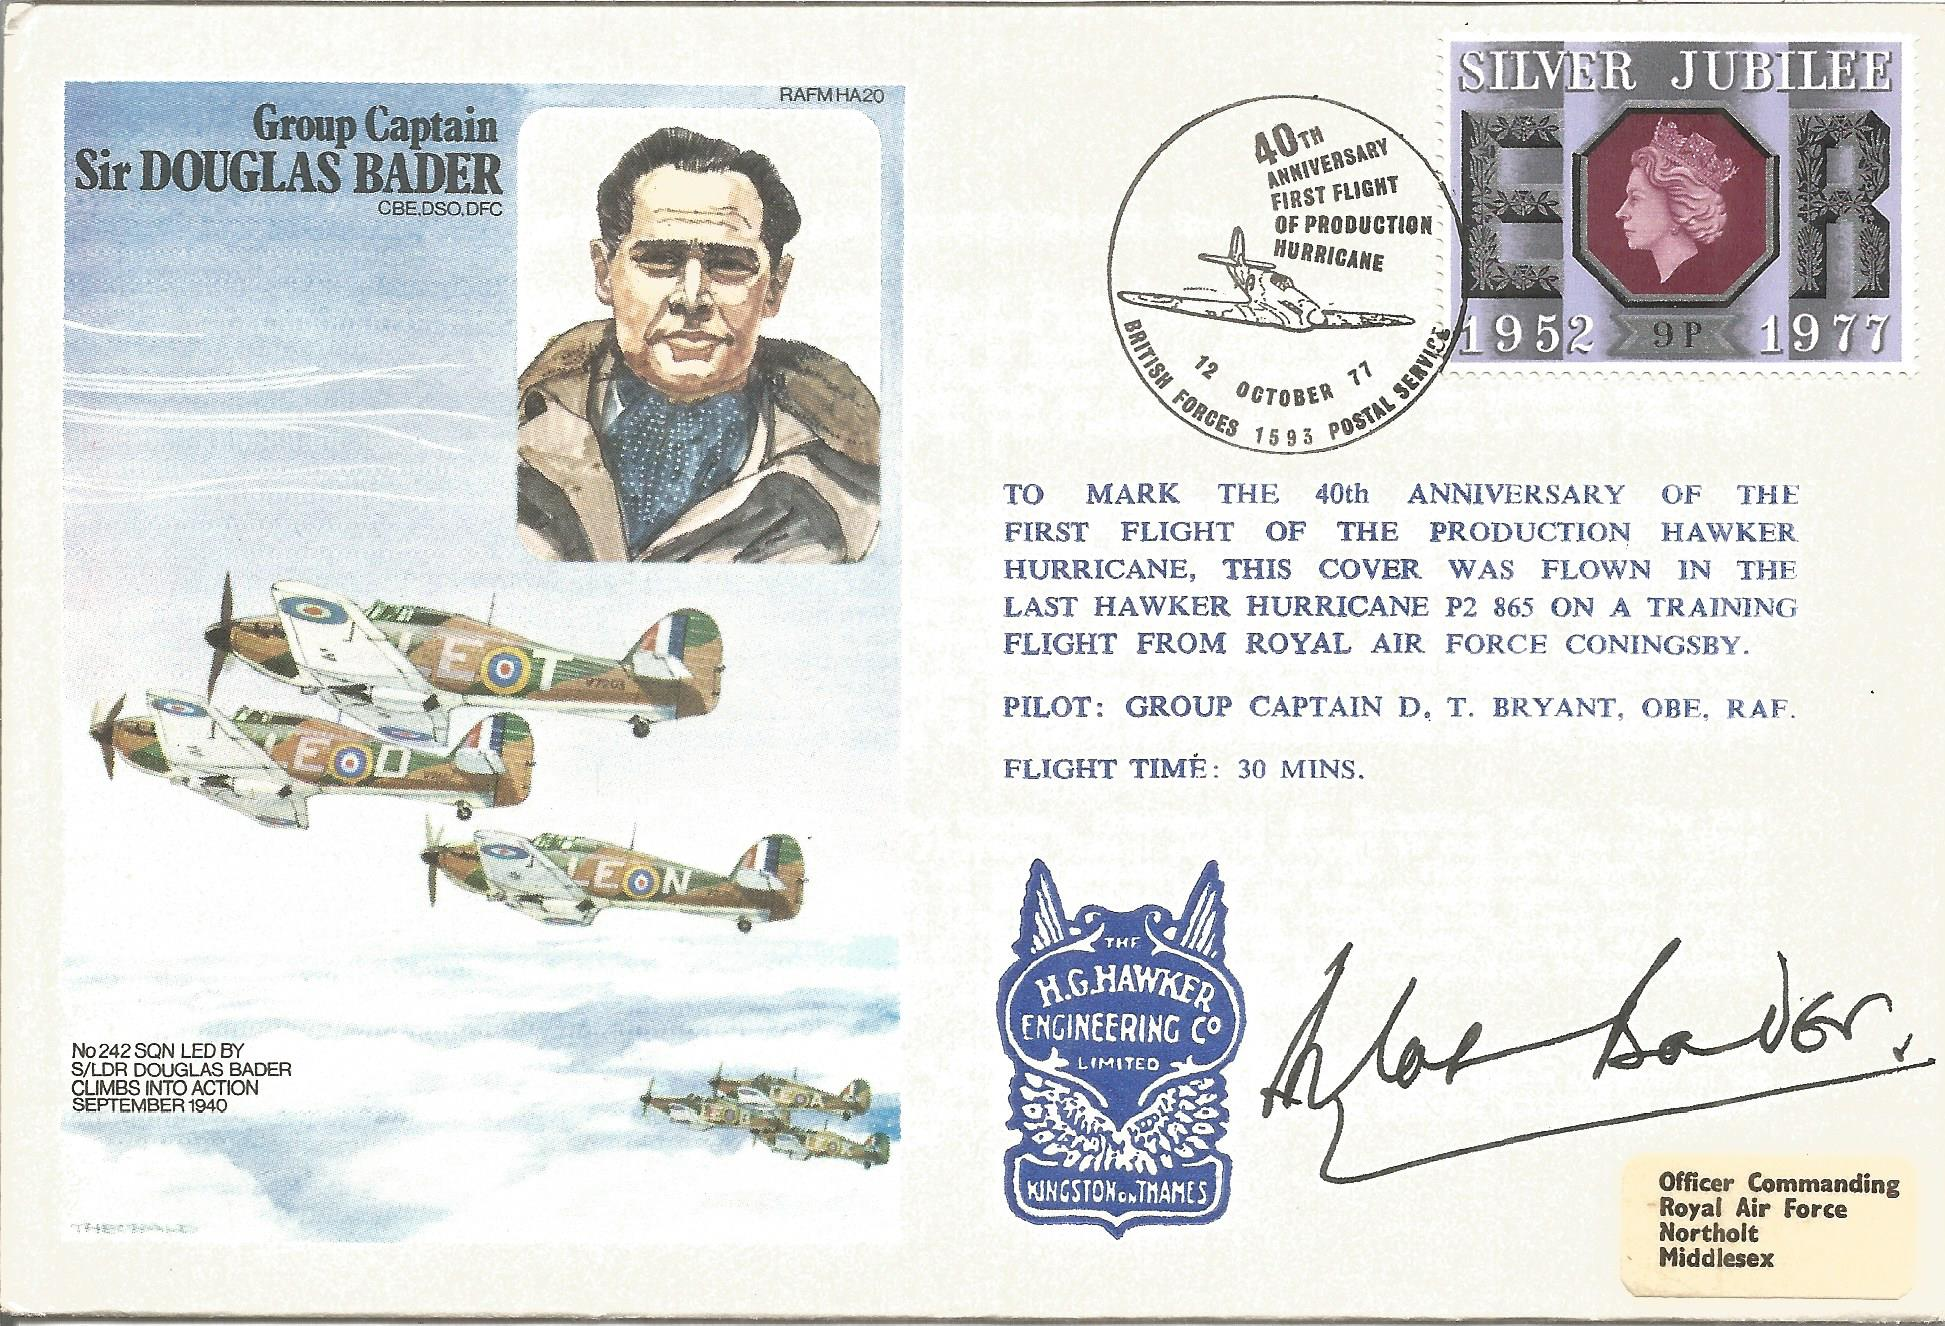 Group Captain Sir Douglas Bader CBE DSO DFC signed Douglas Bader cover No. 151 of 1295. Flown in the